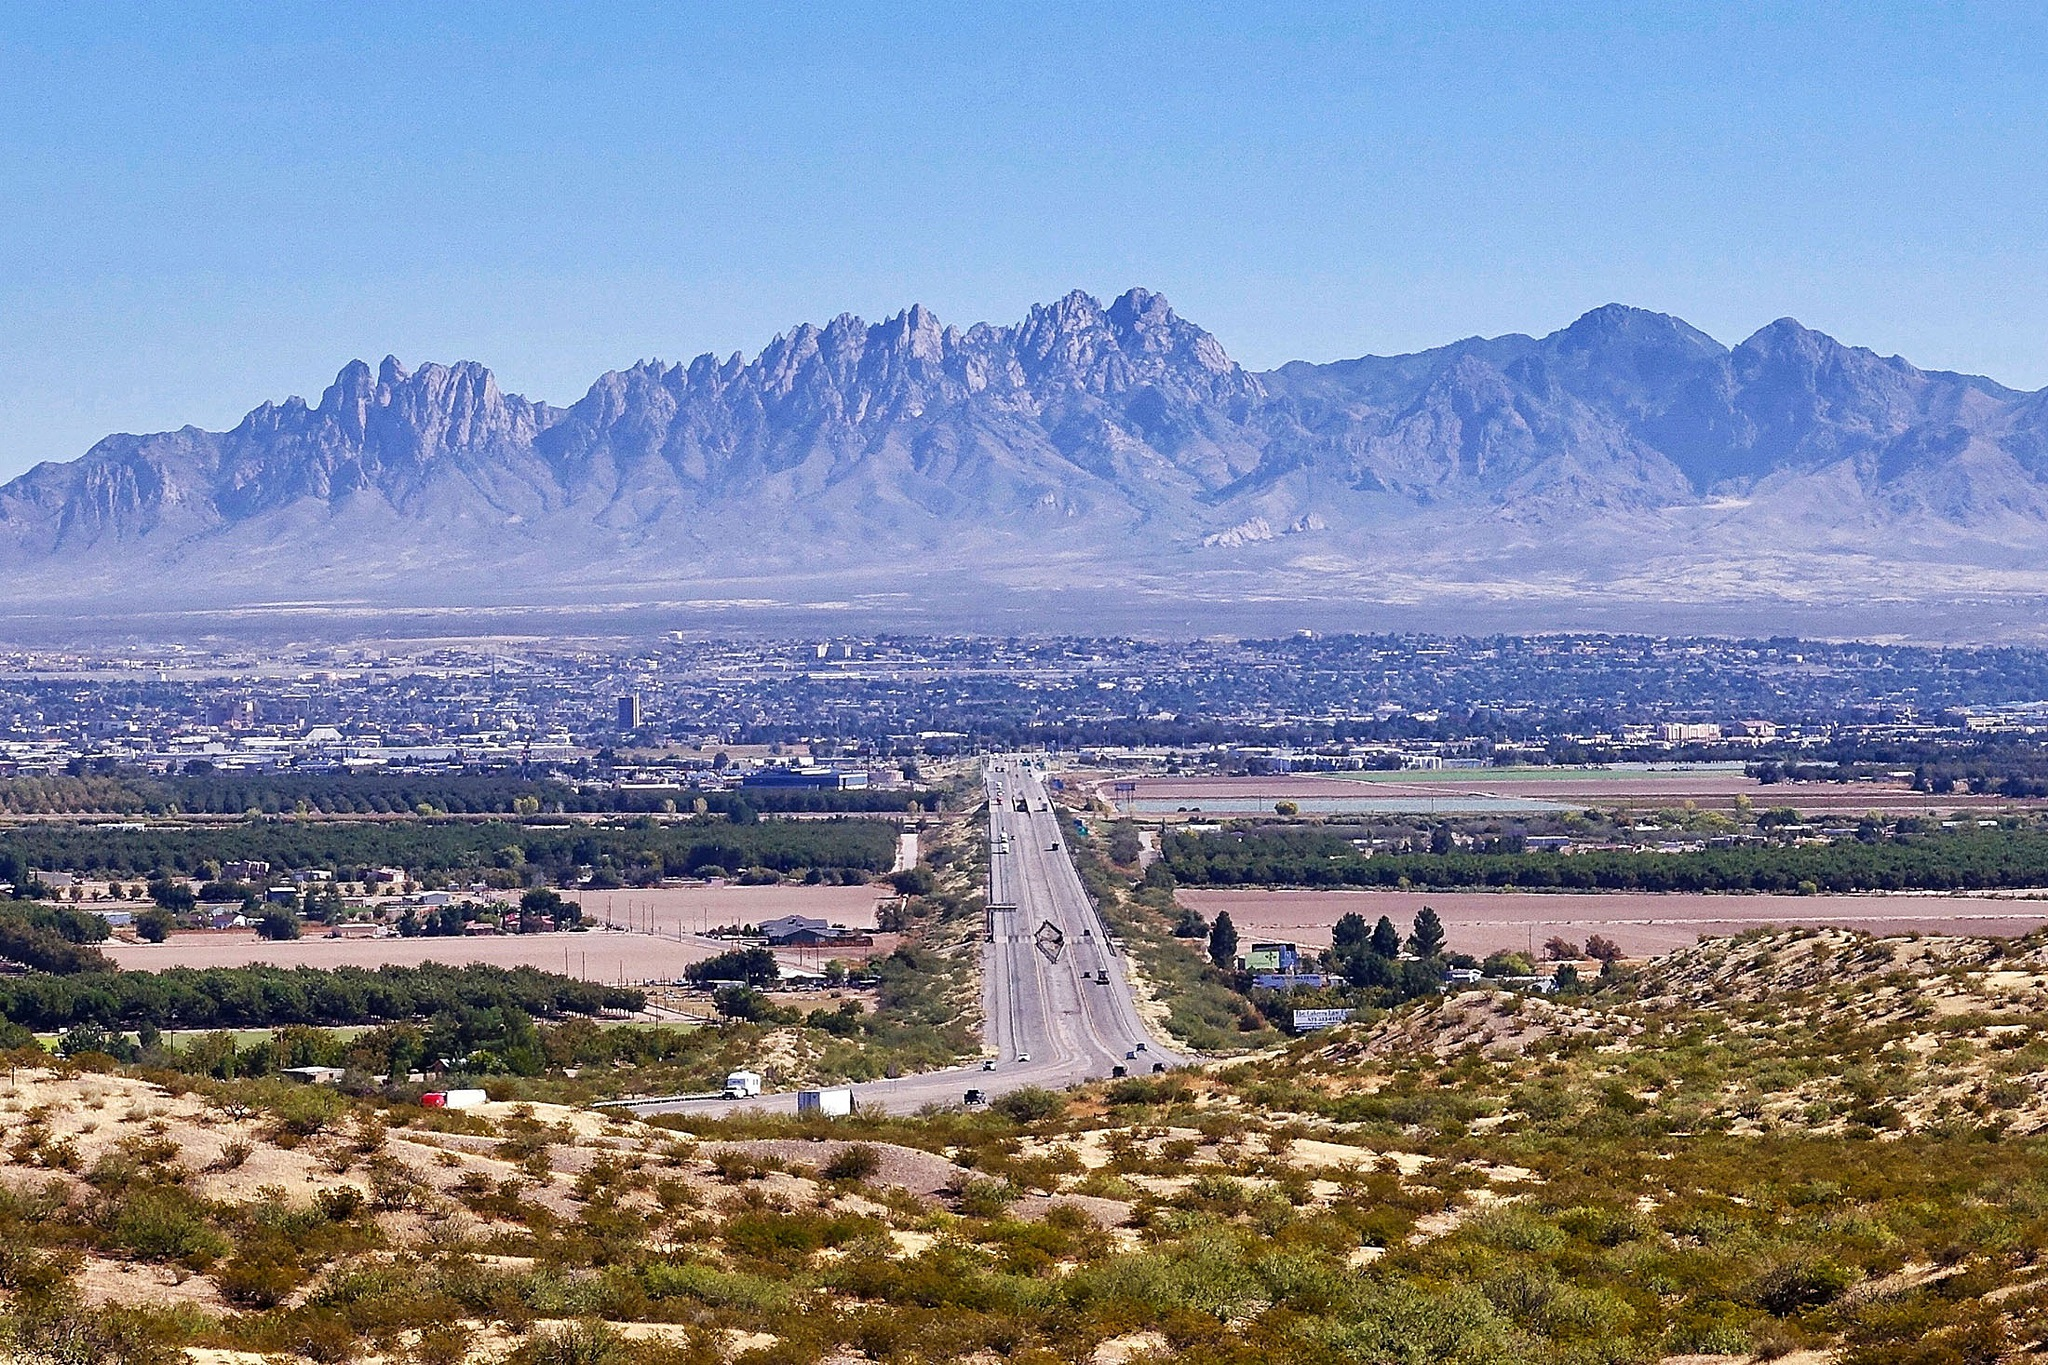 A view over Las Cruces and the Organ Mountains in the USA. by Erwin Widmer